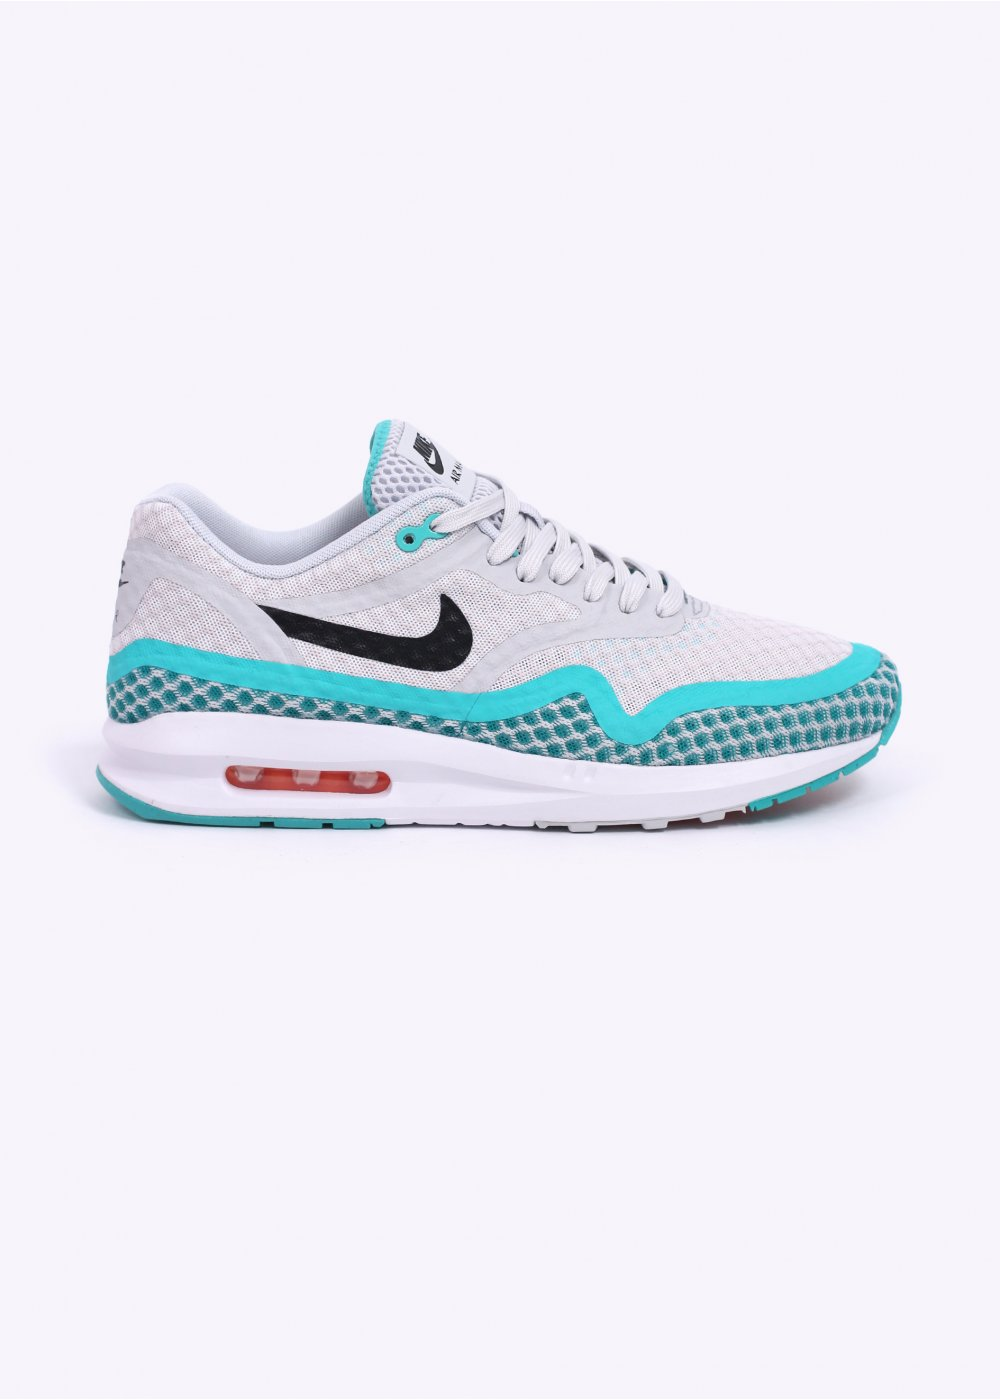 prometedor Si Parcial  Nike Air Max Lunar 1 BR Trainers - Pure Platinum / Blue